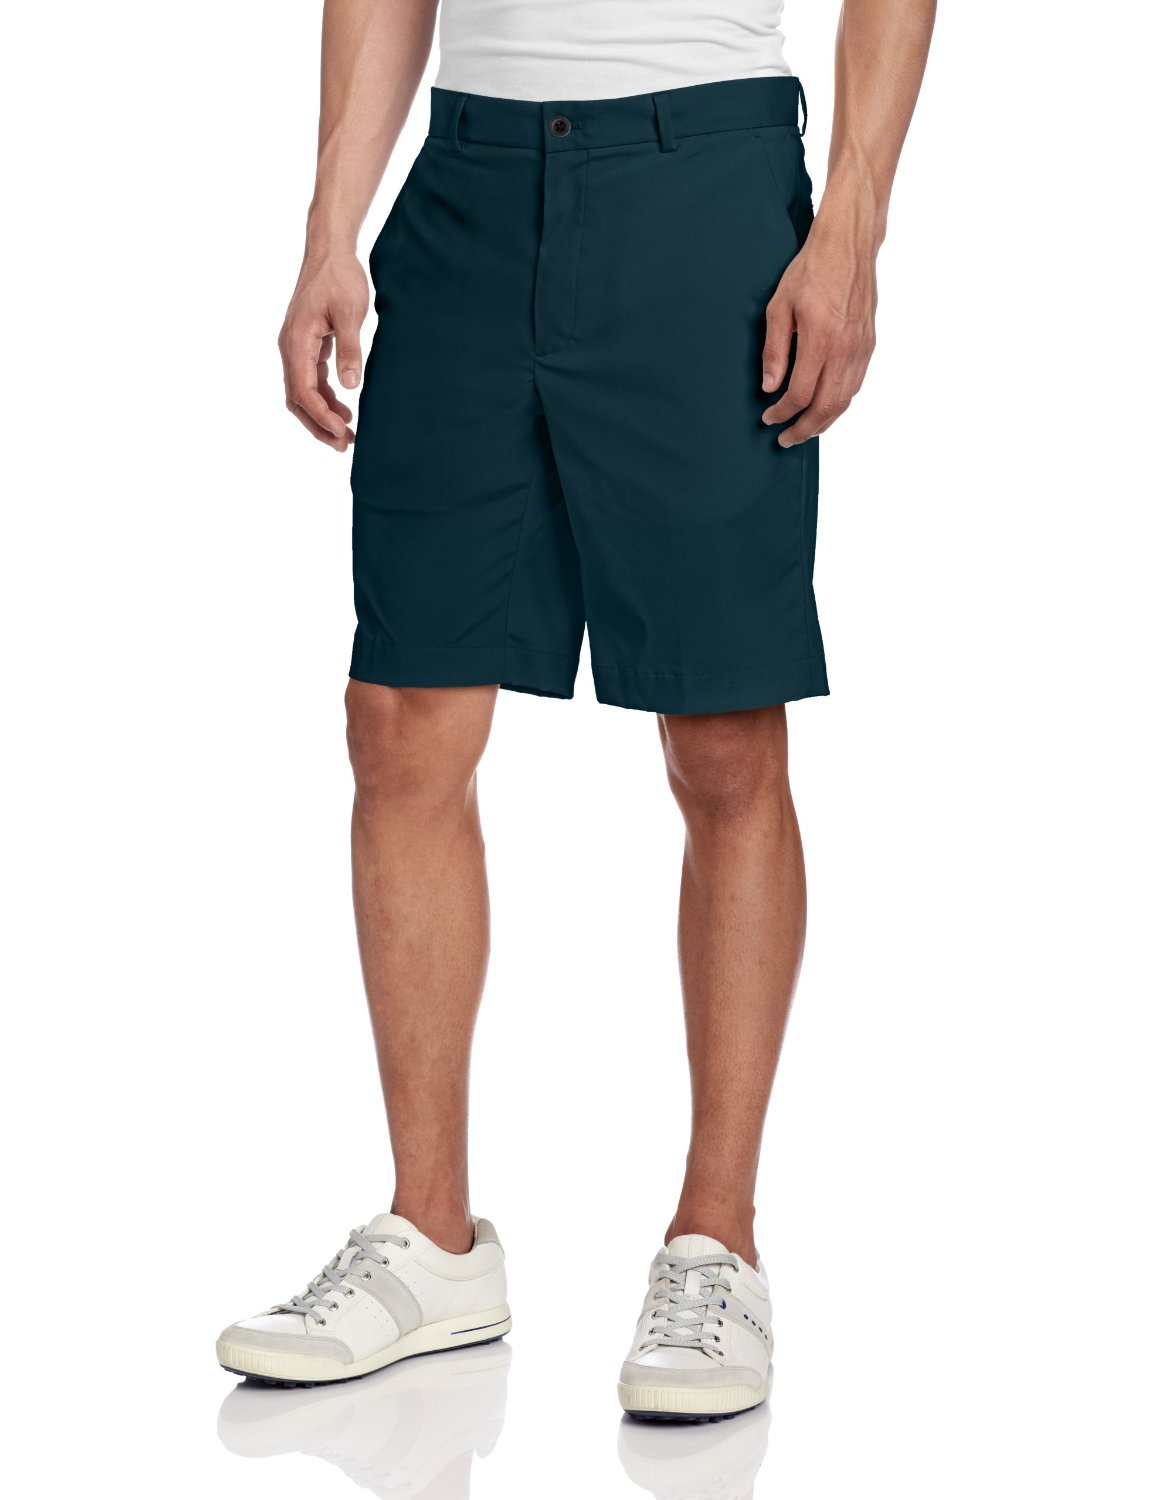 Mens Greg Norman Tech Flat Front Golf Shorts